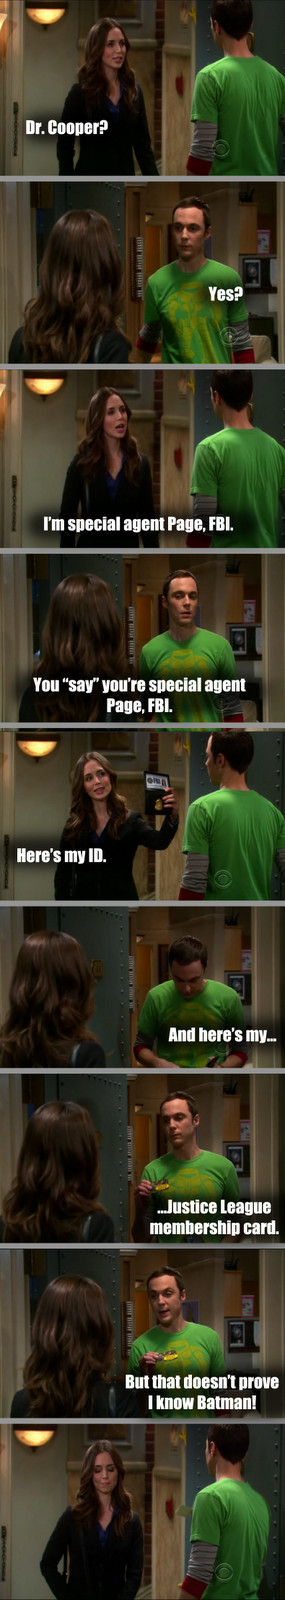 The Time When Sheldon Cooper Met A Hot Police Officer!